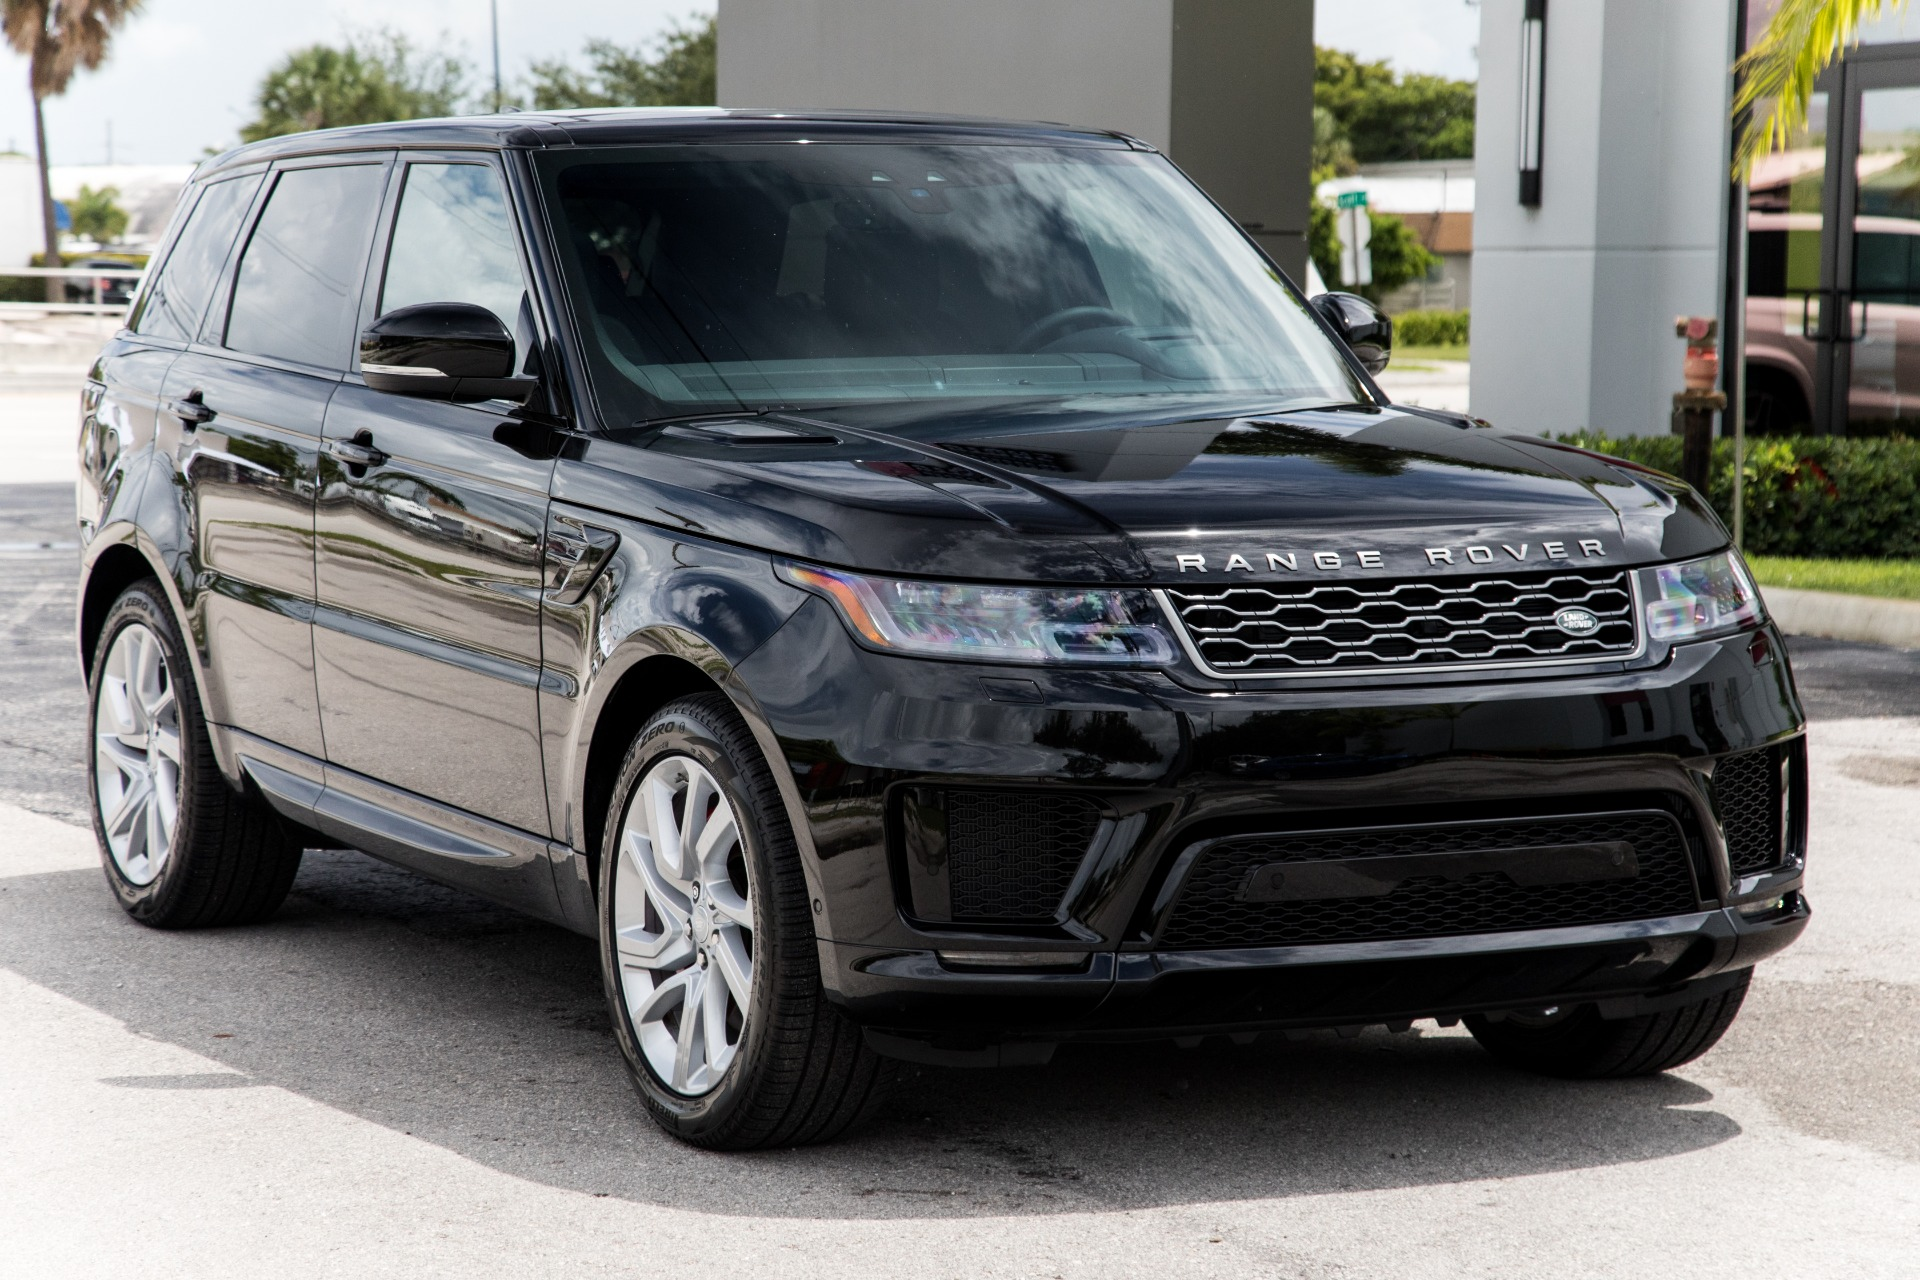 Used-2020-Land-Rover-Range-Rover-Sport-P525-HSE-Dynamic